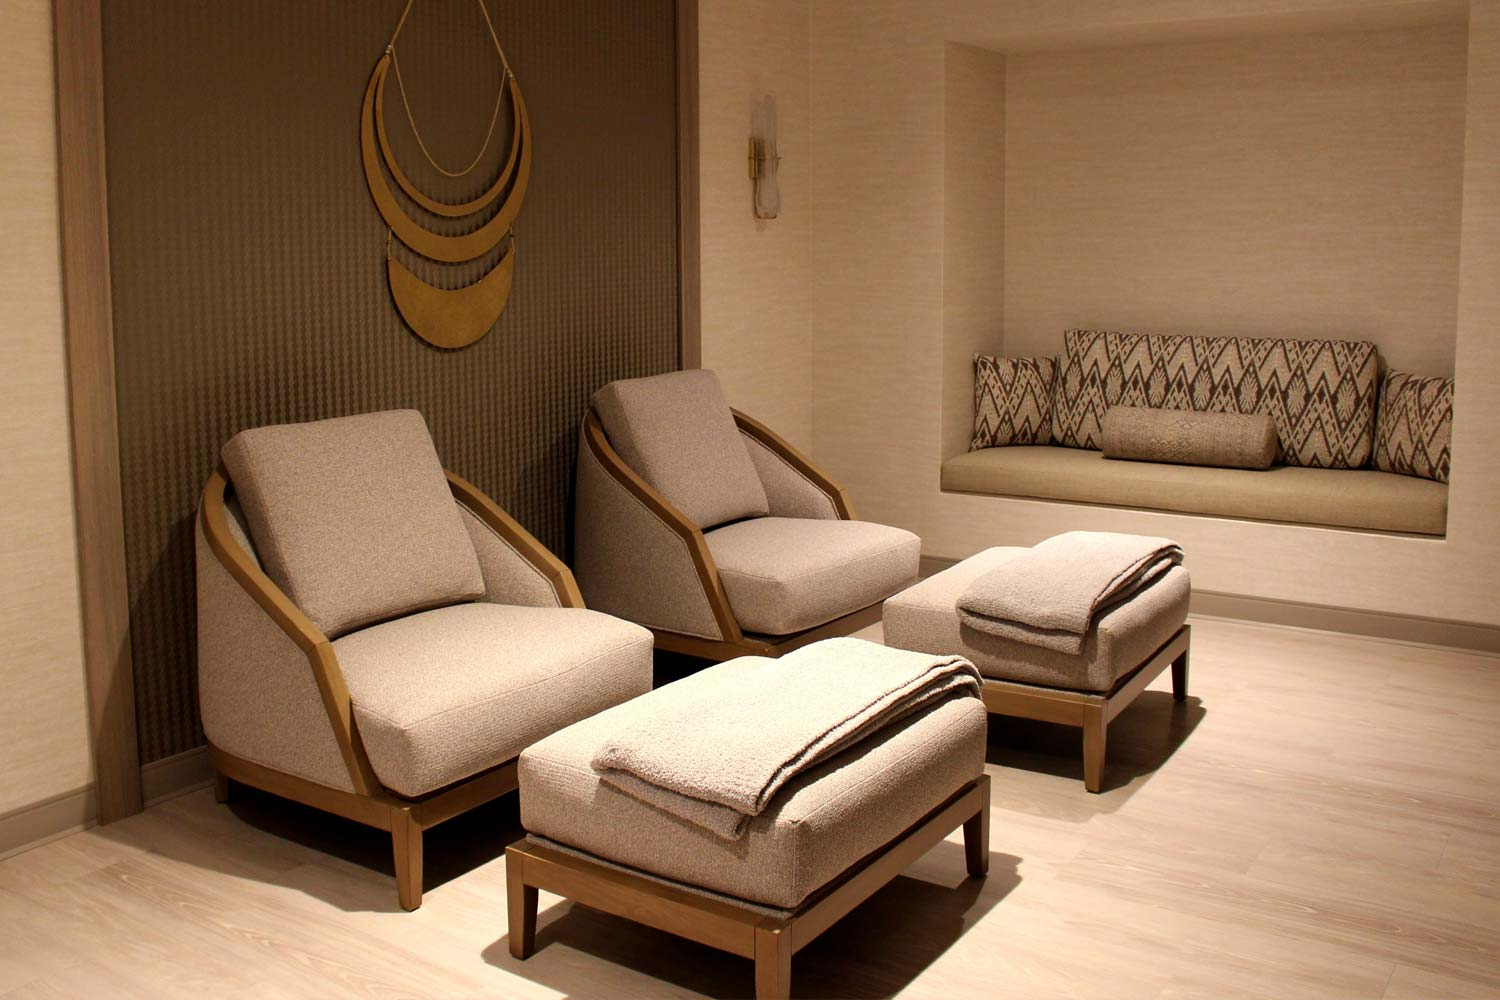 two comfortable chairs with foot-stools in the tranquility spa suite